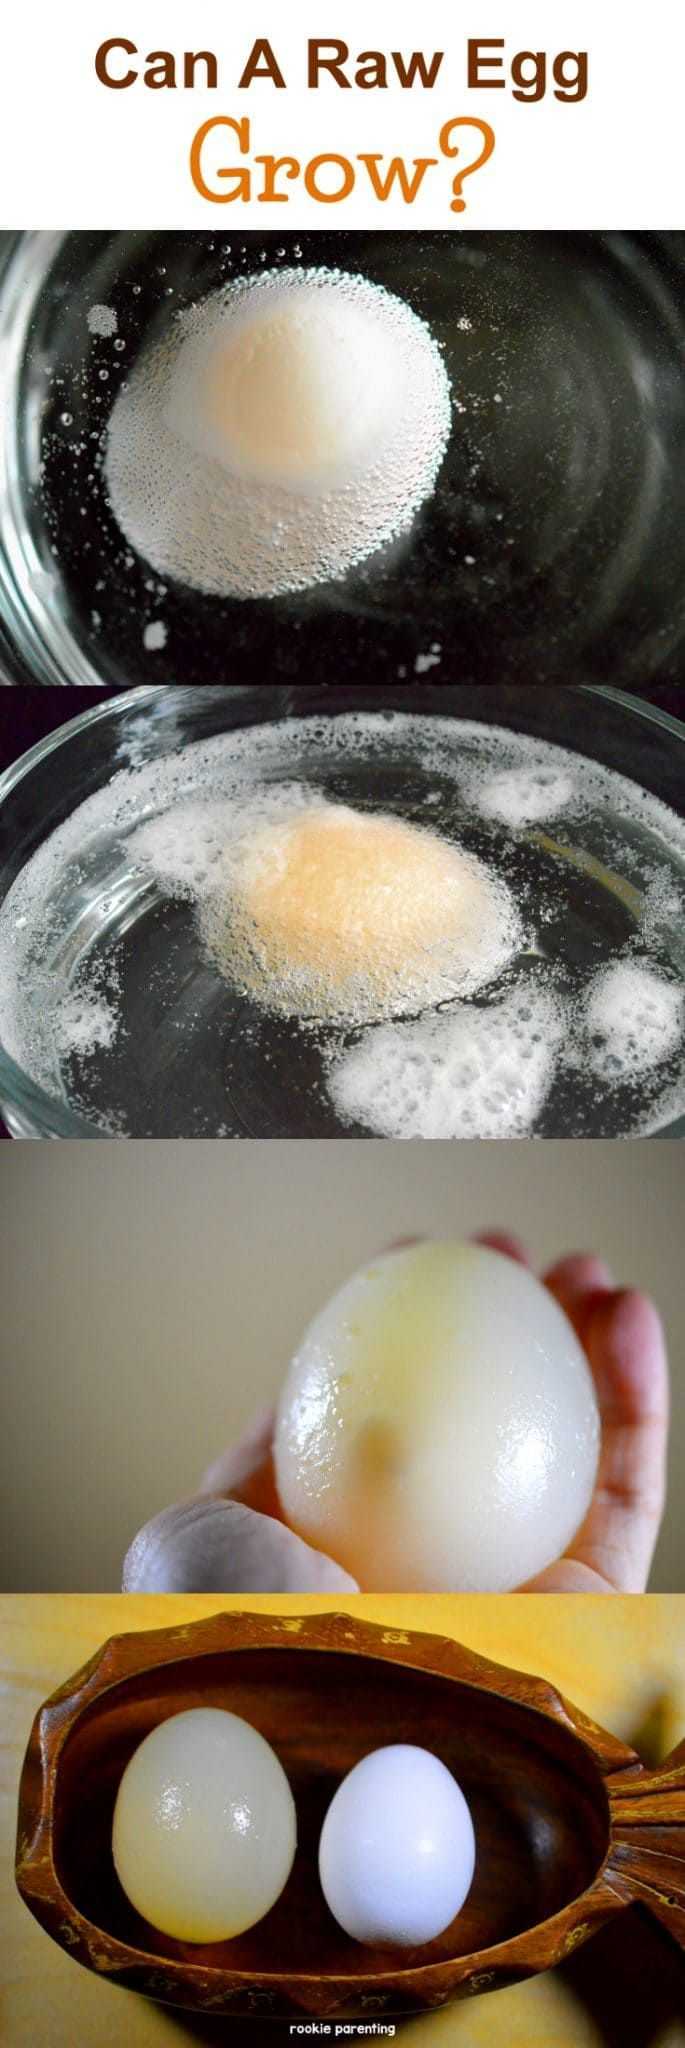 Egg & Osmosis - Bouncy Egg - #SimpleExperimentsForKids